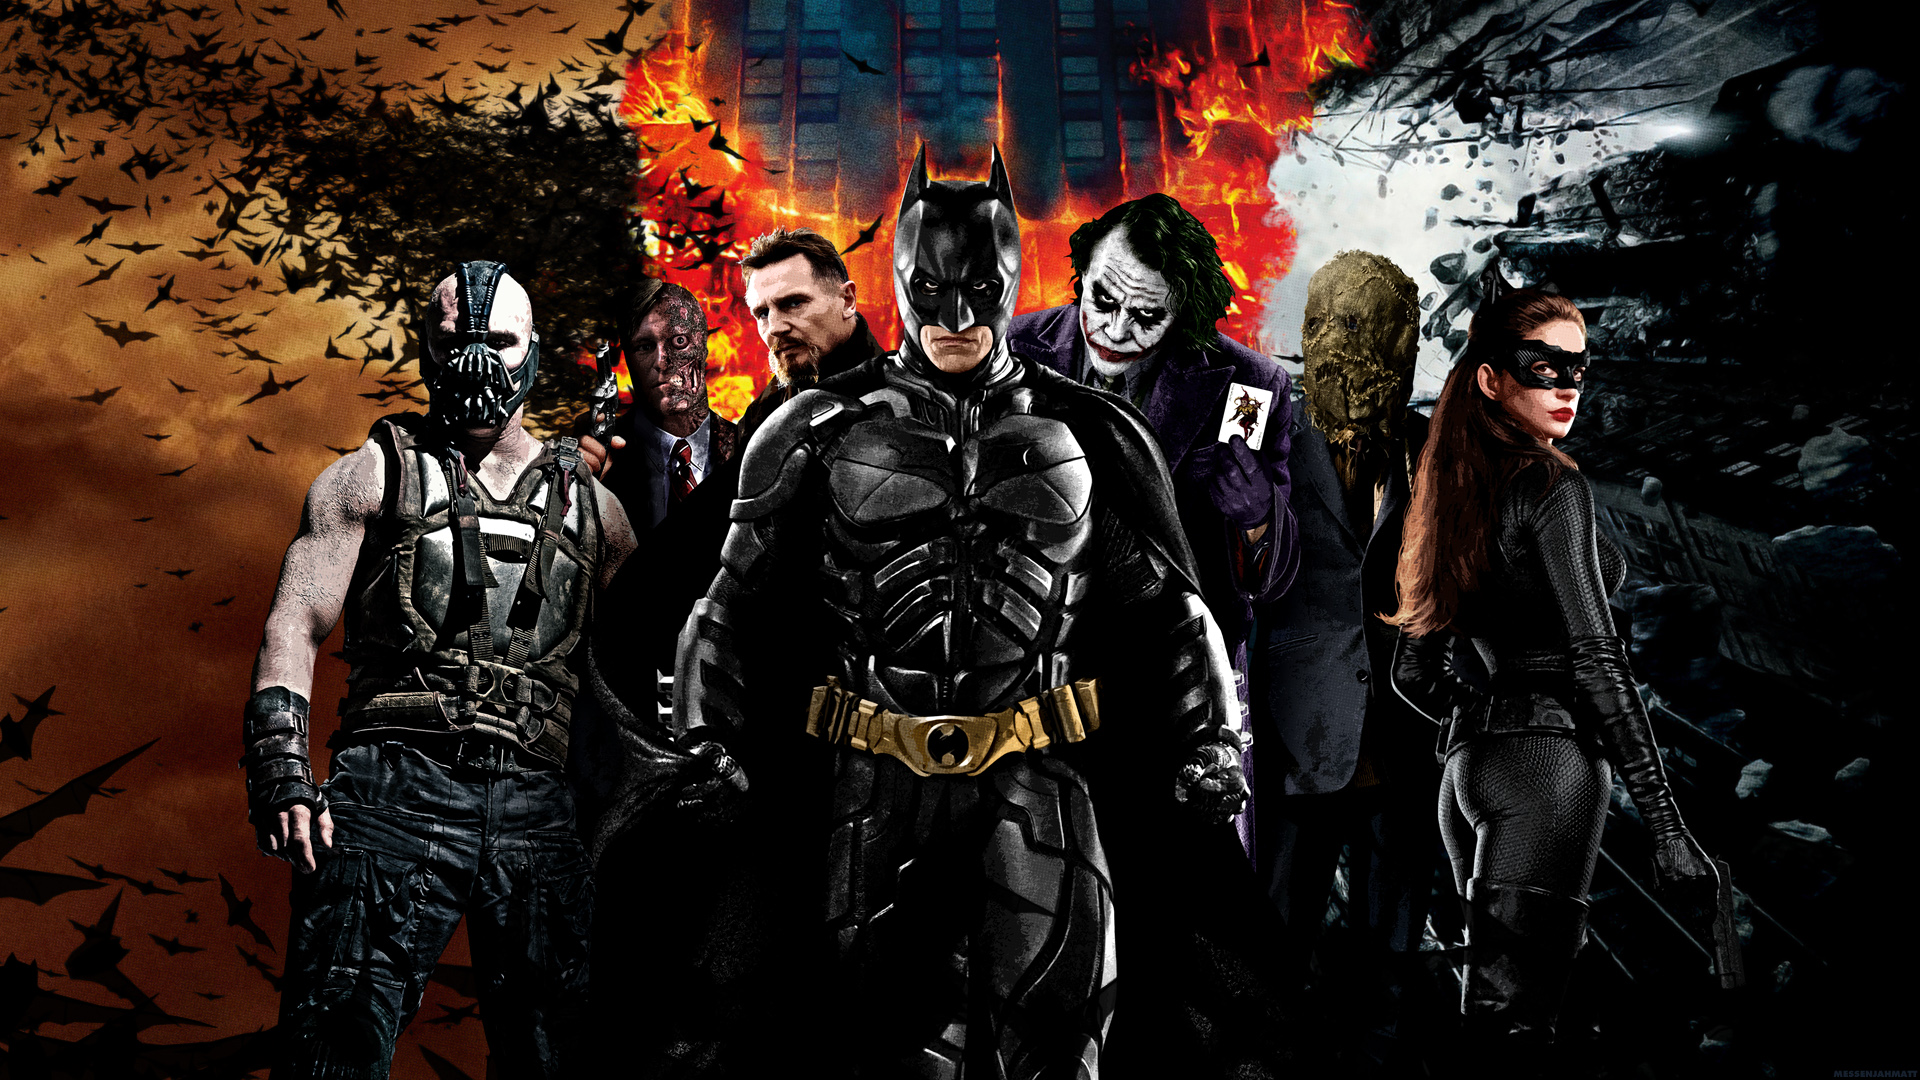 Bane Wallpaper Hd: Wallpapers for Gt Batman Vs Bane Wallpaper 1920x1080px